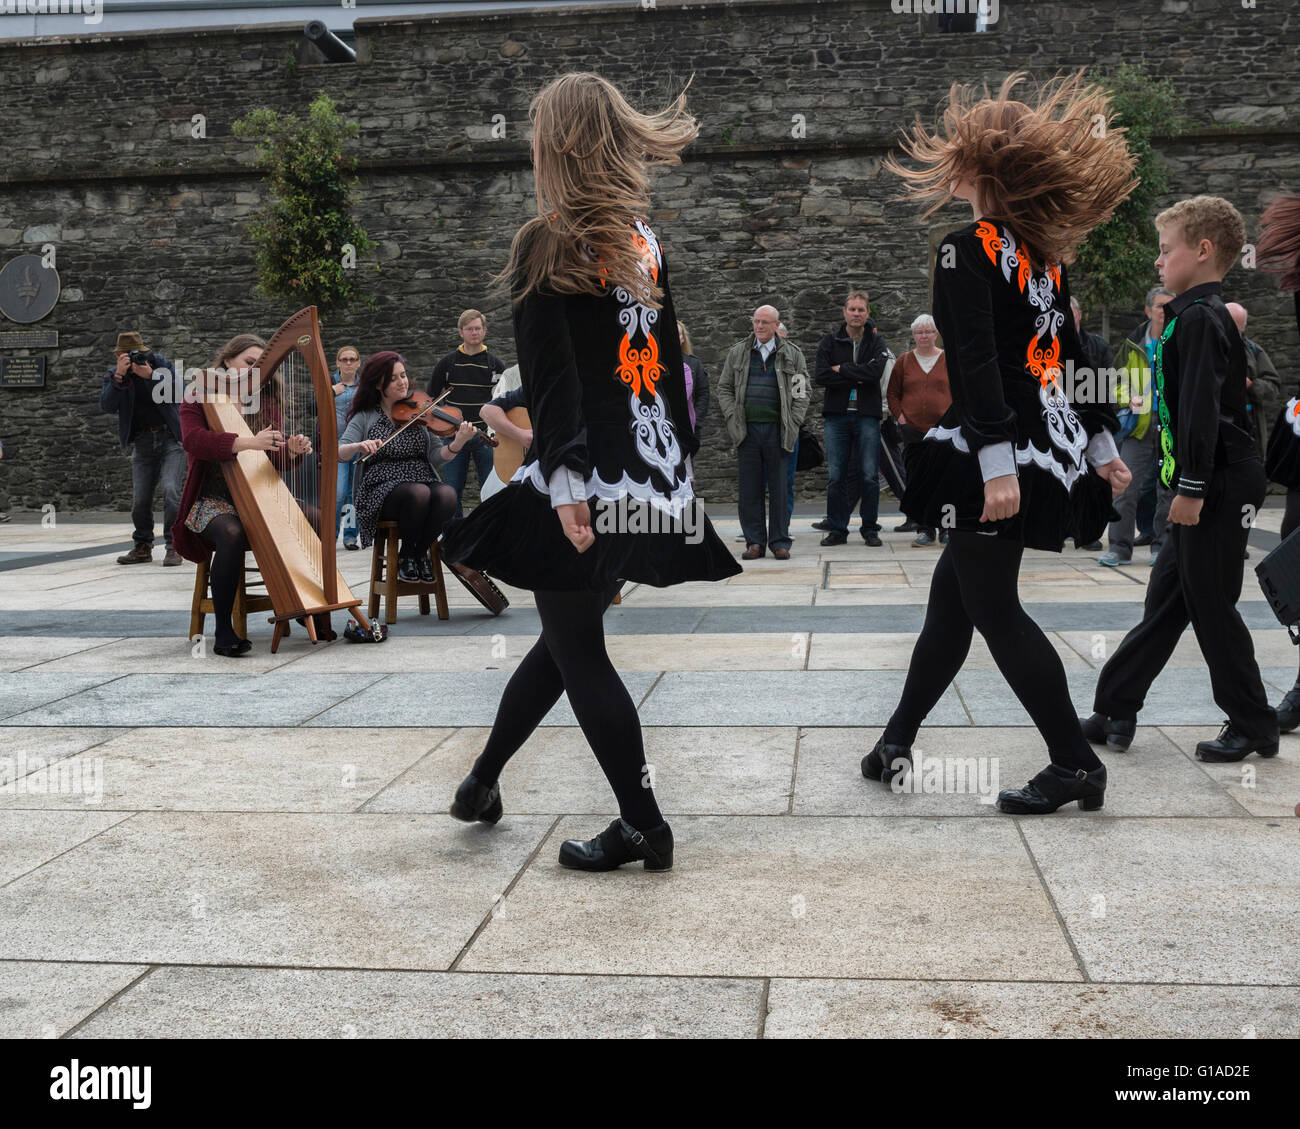 Irish dancers and musicians playing at Guildhall Square. Derry Londonderry, Northern Ireland, UK. Europe - Stock Image